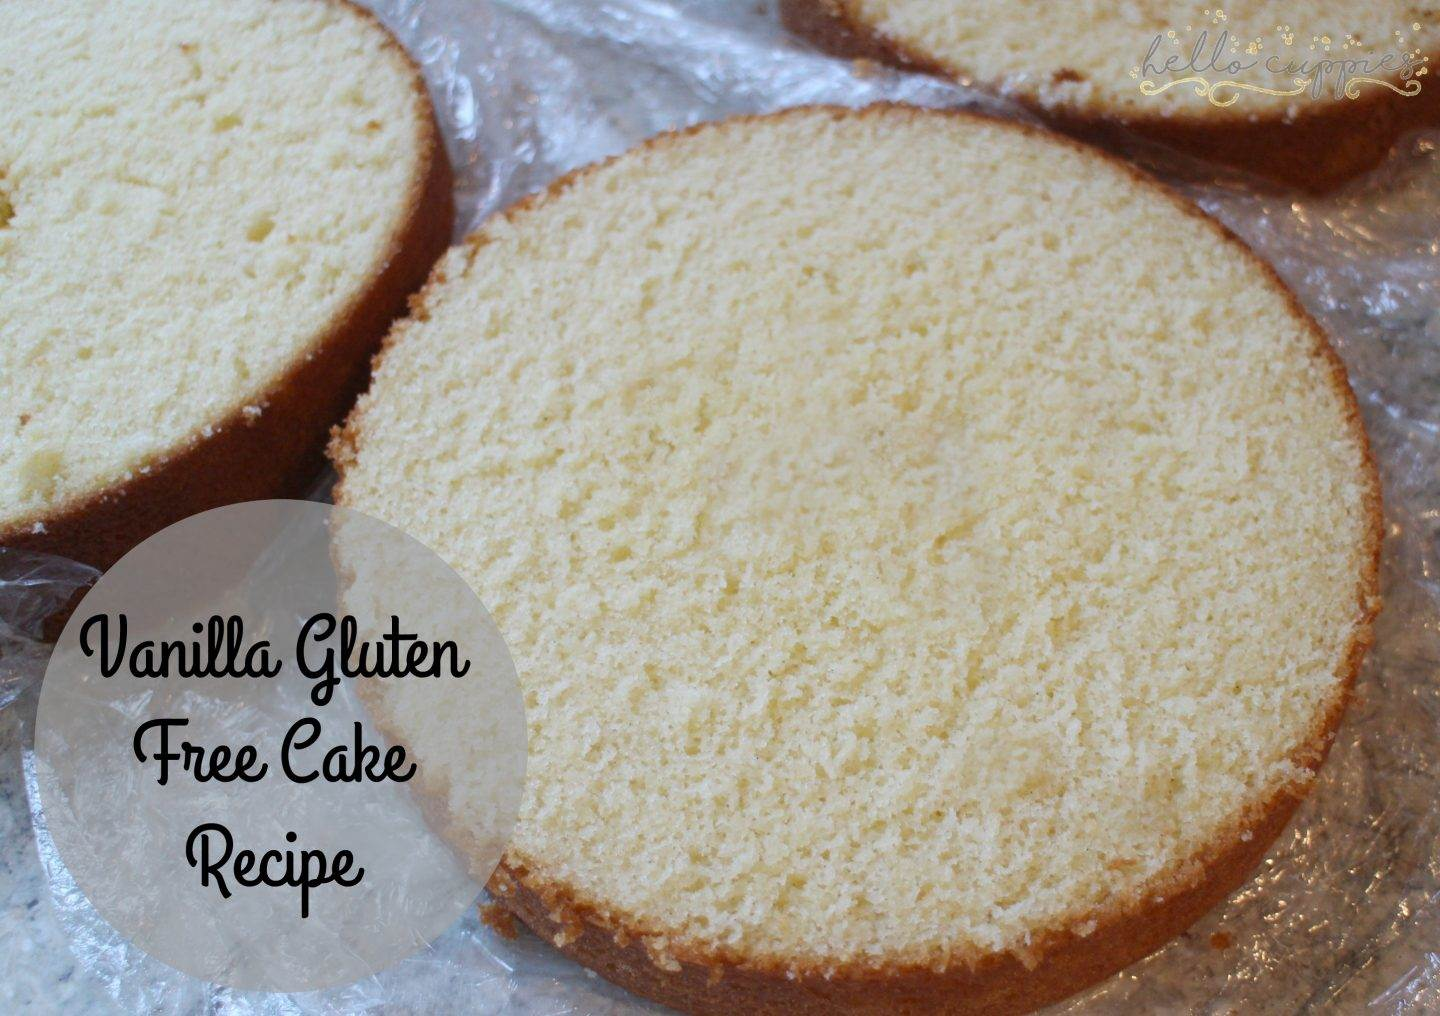 Gluten Free Cake Recipe Baking Tips Vanilla gluten free cake recipe